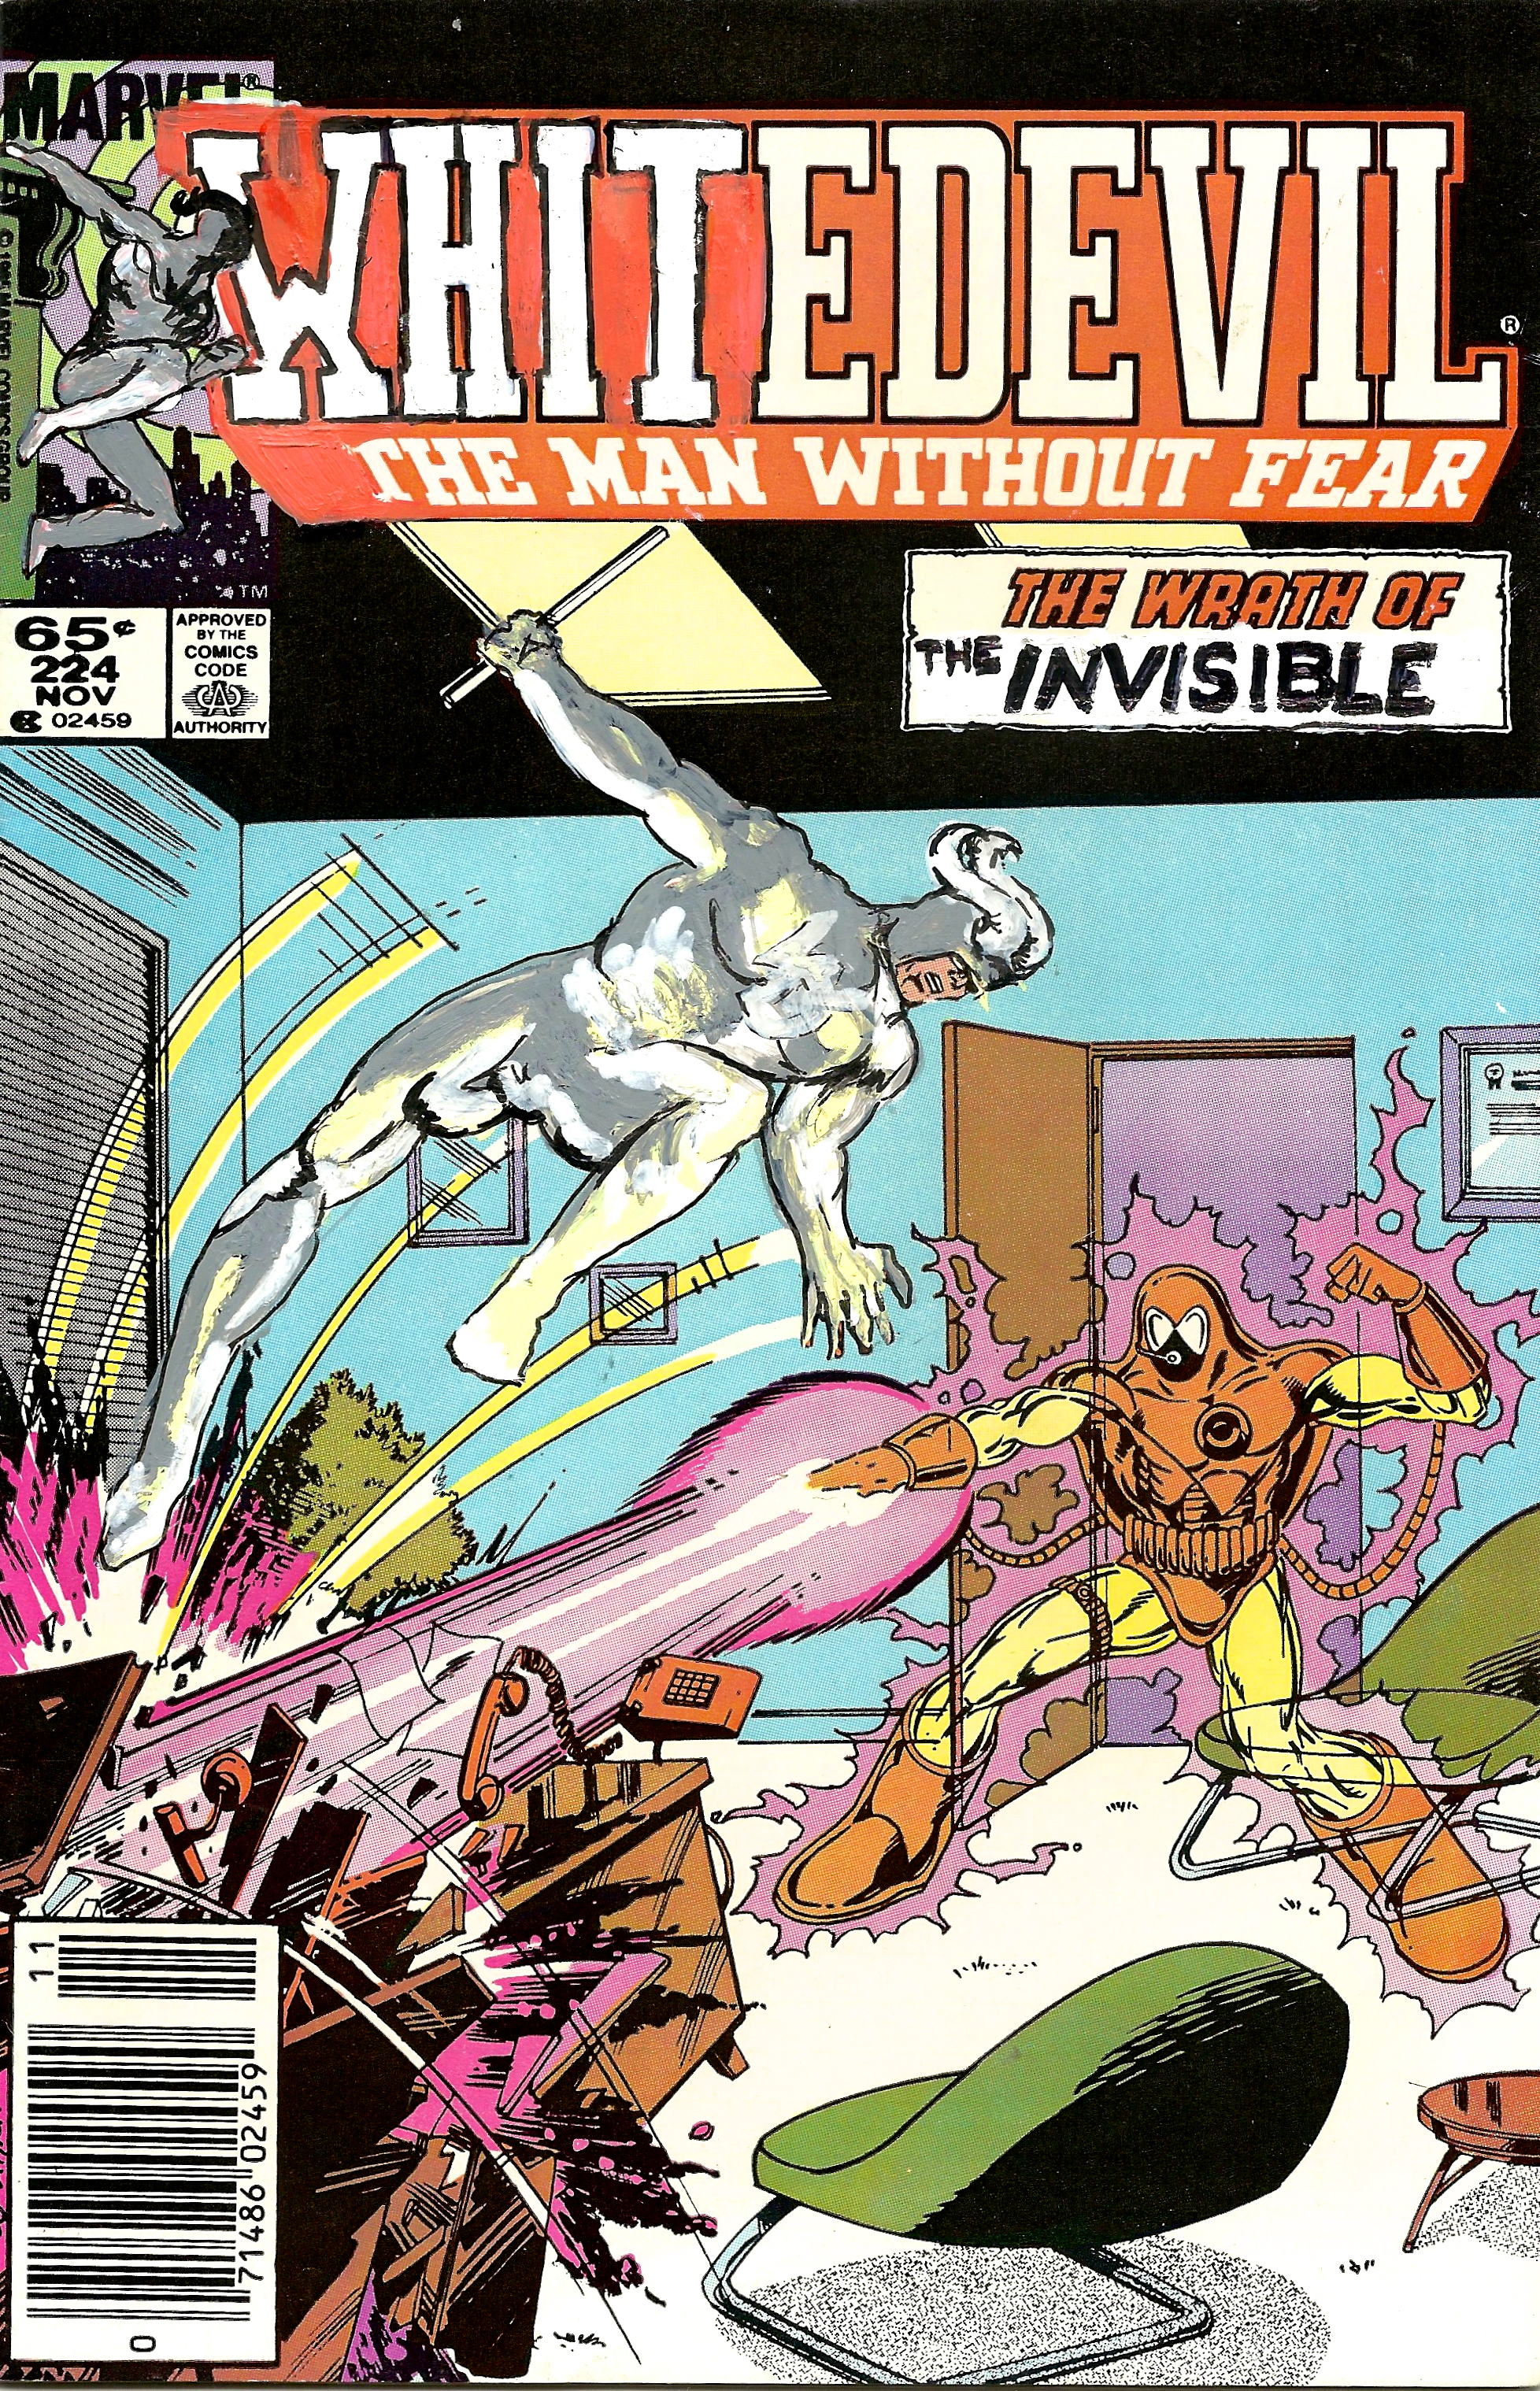 Kumasi J. Barnett Whitedevil #224 The Wrath of the Invisible, 2015 Acrylic, marker, pen and oil marker on comic book 9 3/4h x 6 1/4w in